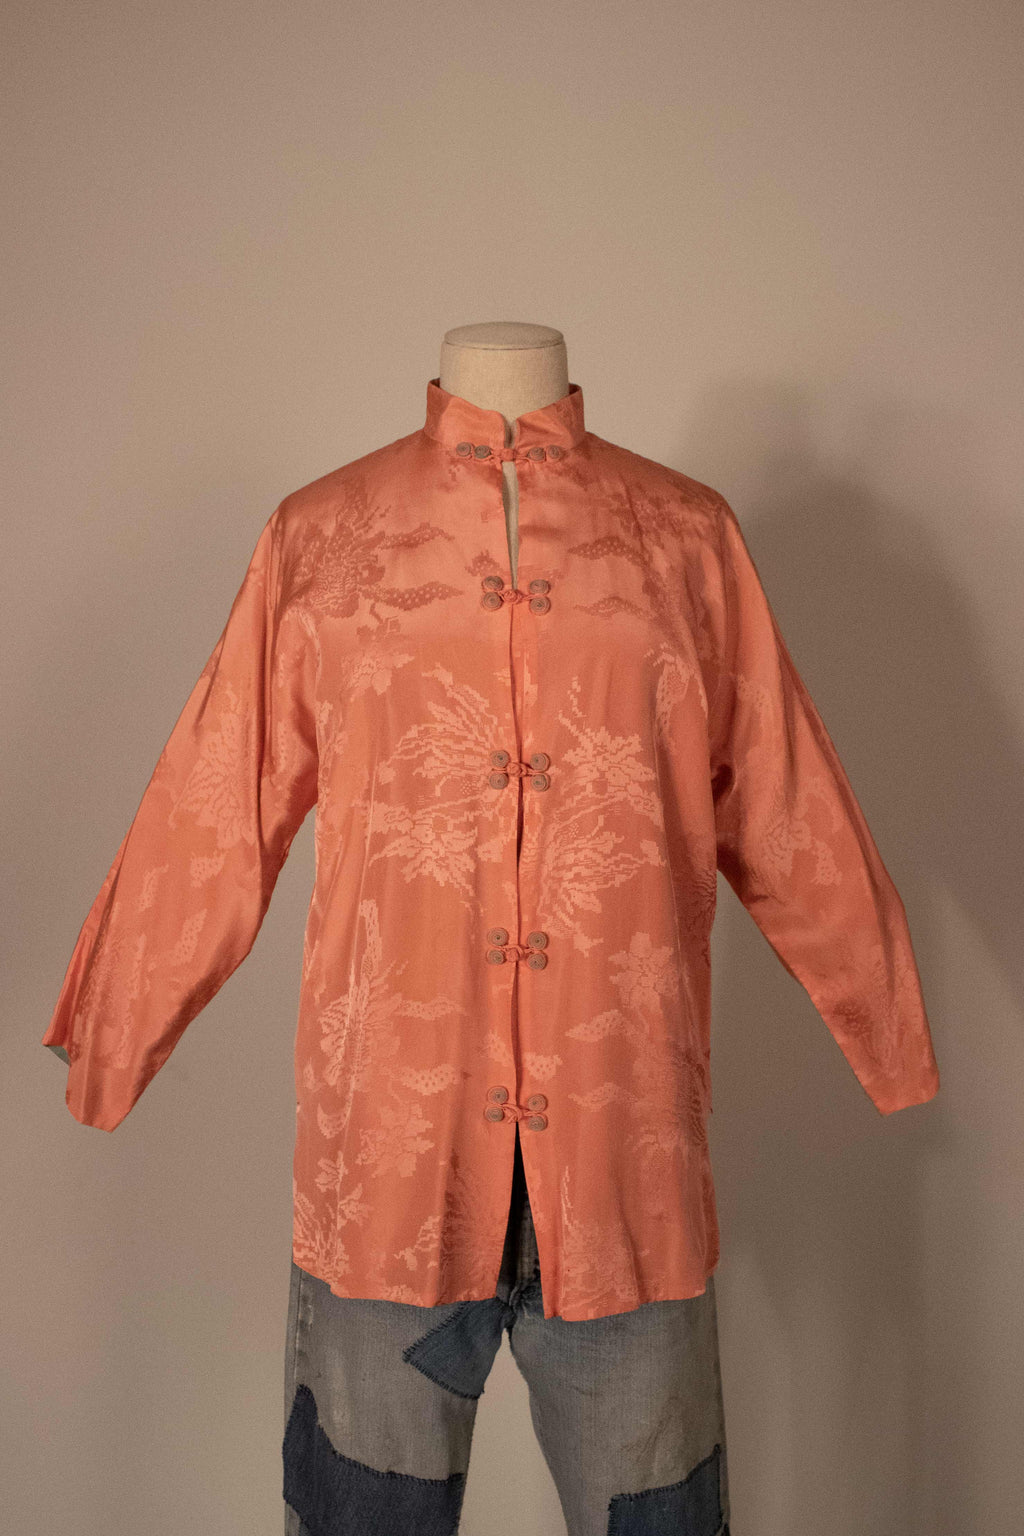 Gumps San Francisco pink silk jacket